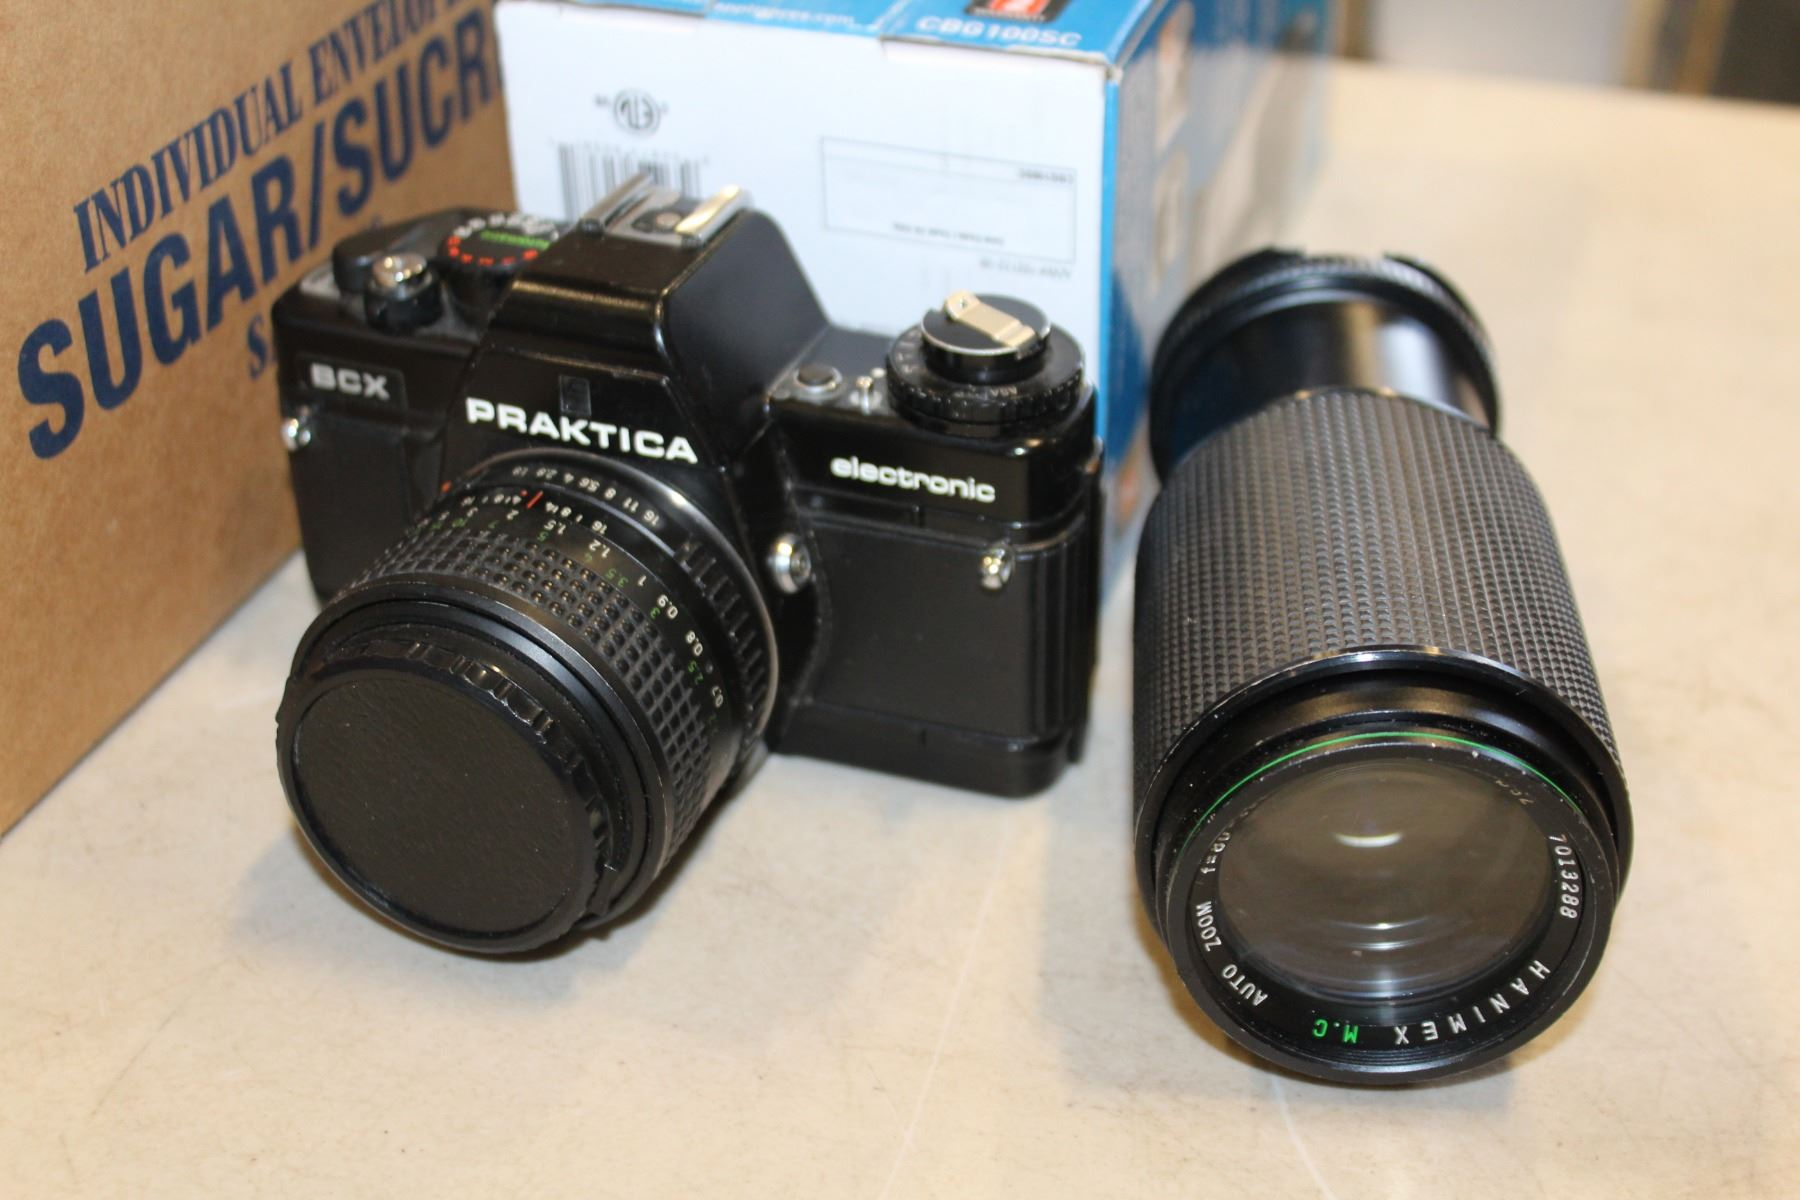 Box with praktica camera and lense panasonic phone system new coffee